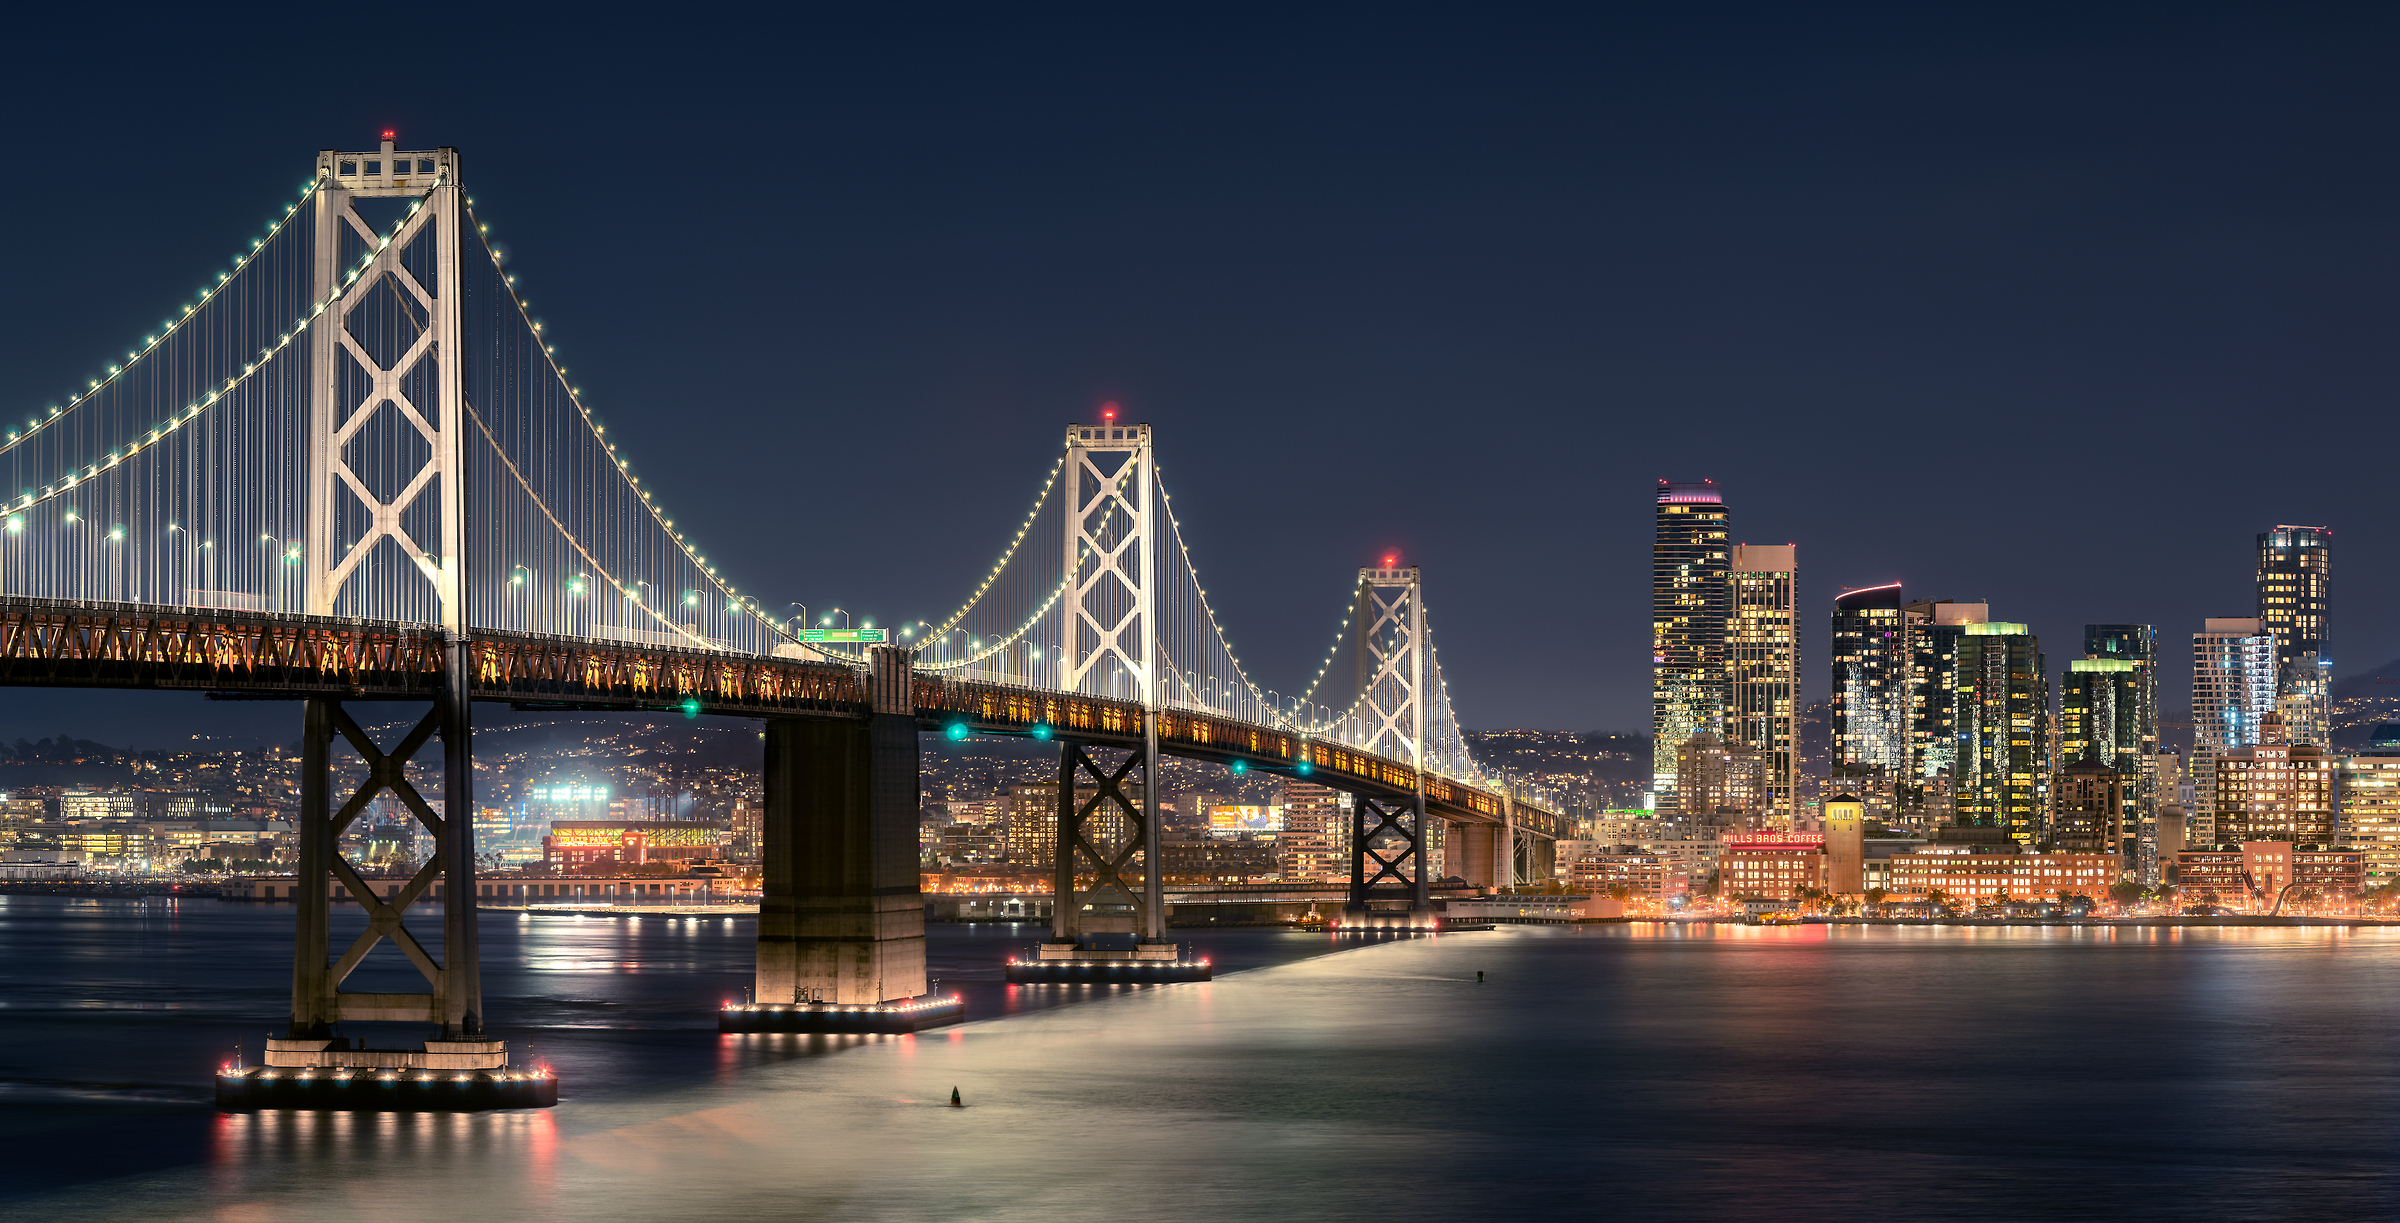 266 megapixels! A very high resolution, large-format VAST photo print of the San Francisco Bay Bridge; photograph created by Jim Tarpo in Yerba Buena Island and Treasure Island, San Francisco, California